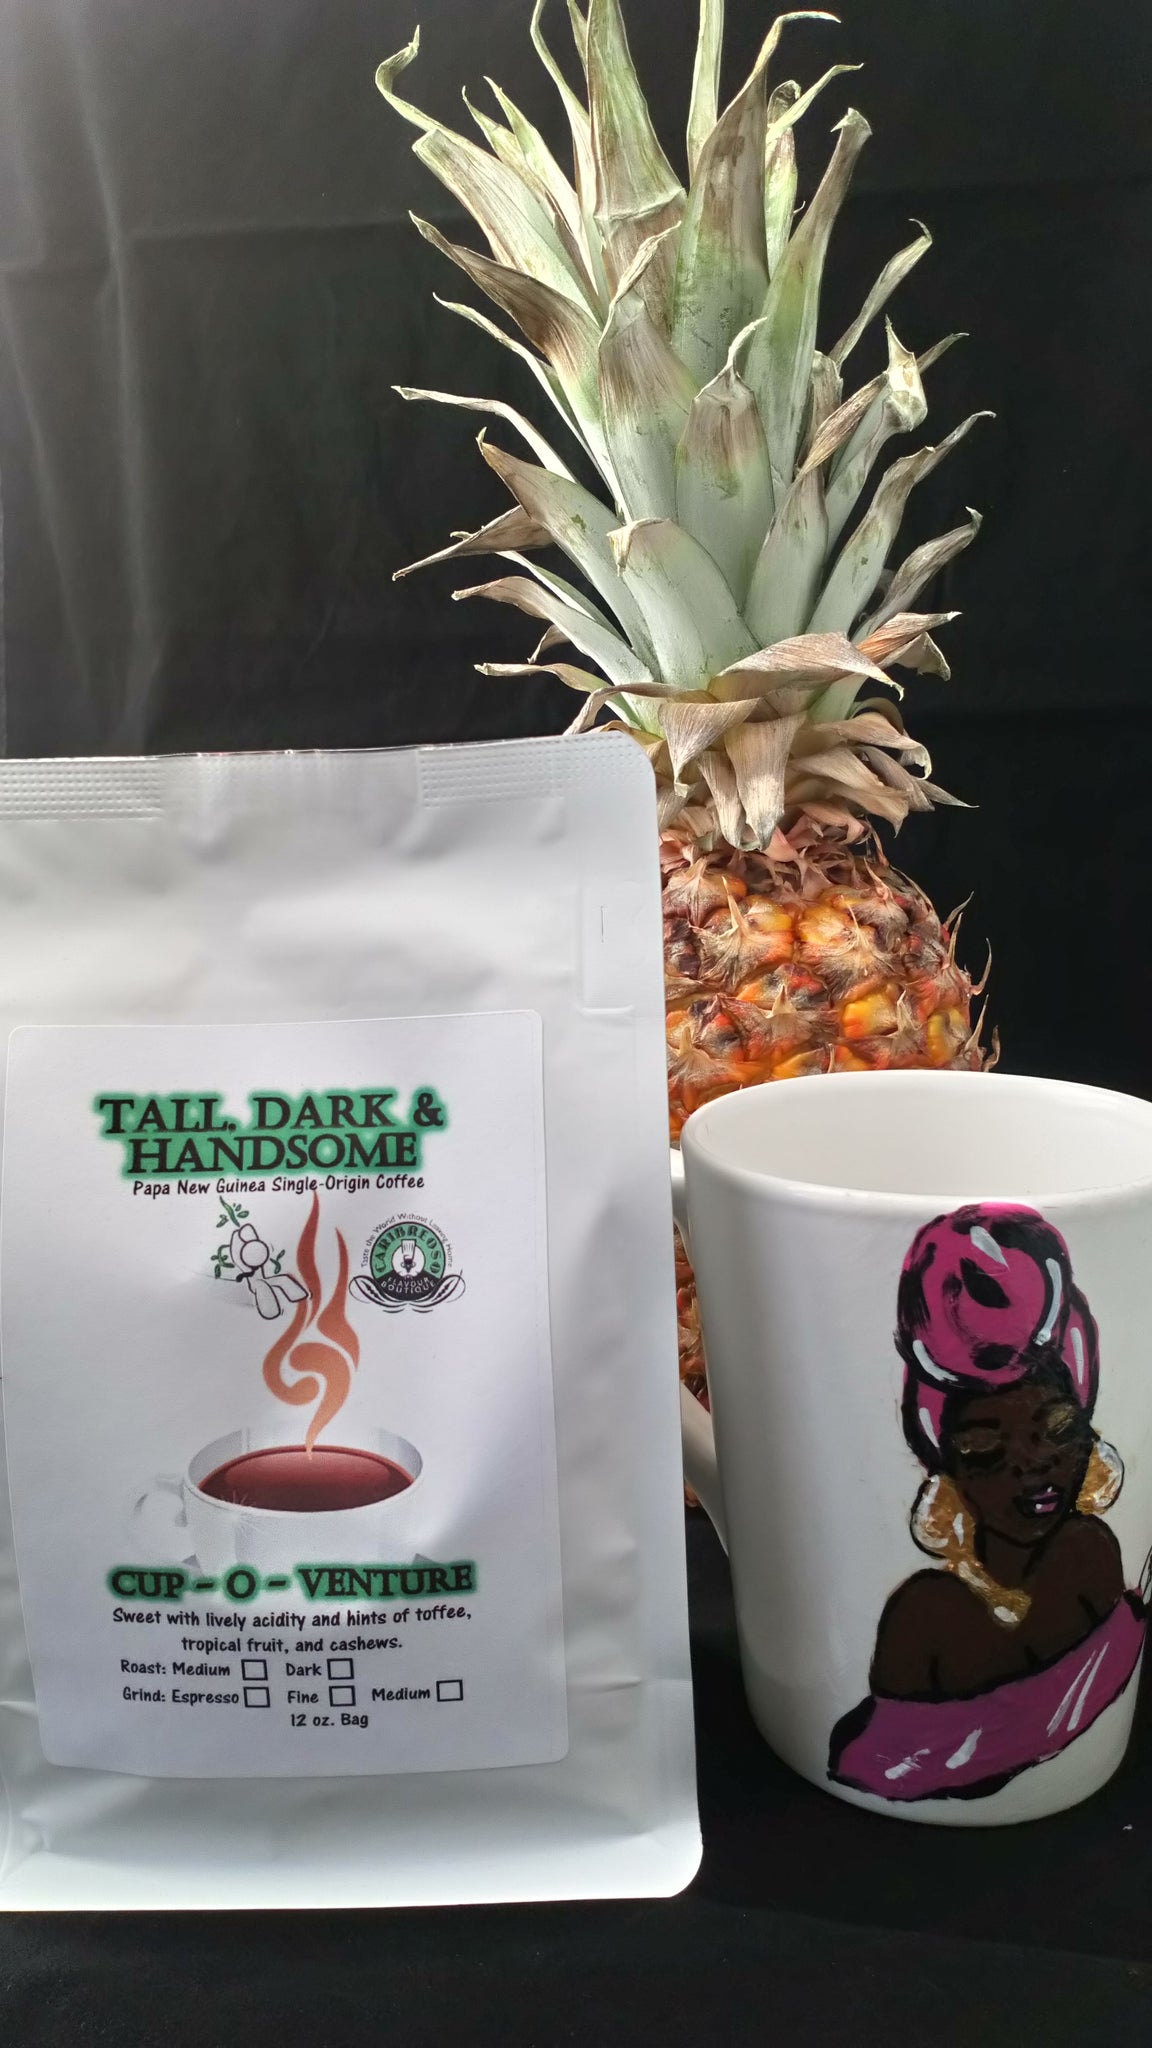 Tall, Dark & Handsome (Mexico Single-Origin Coffee)